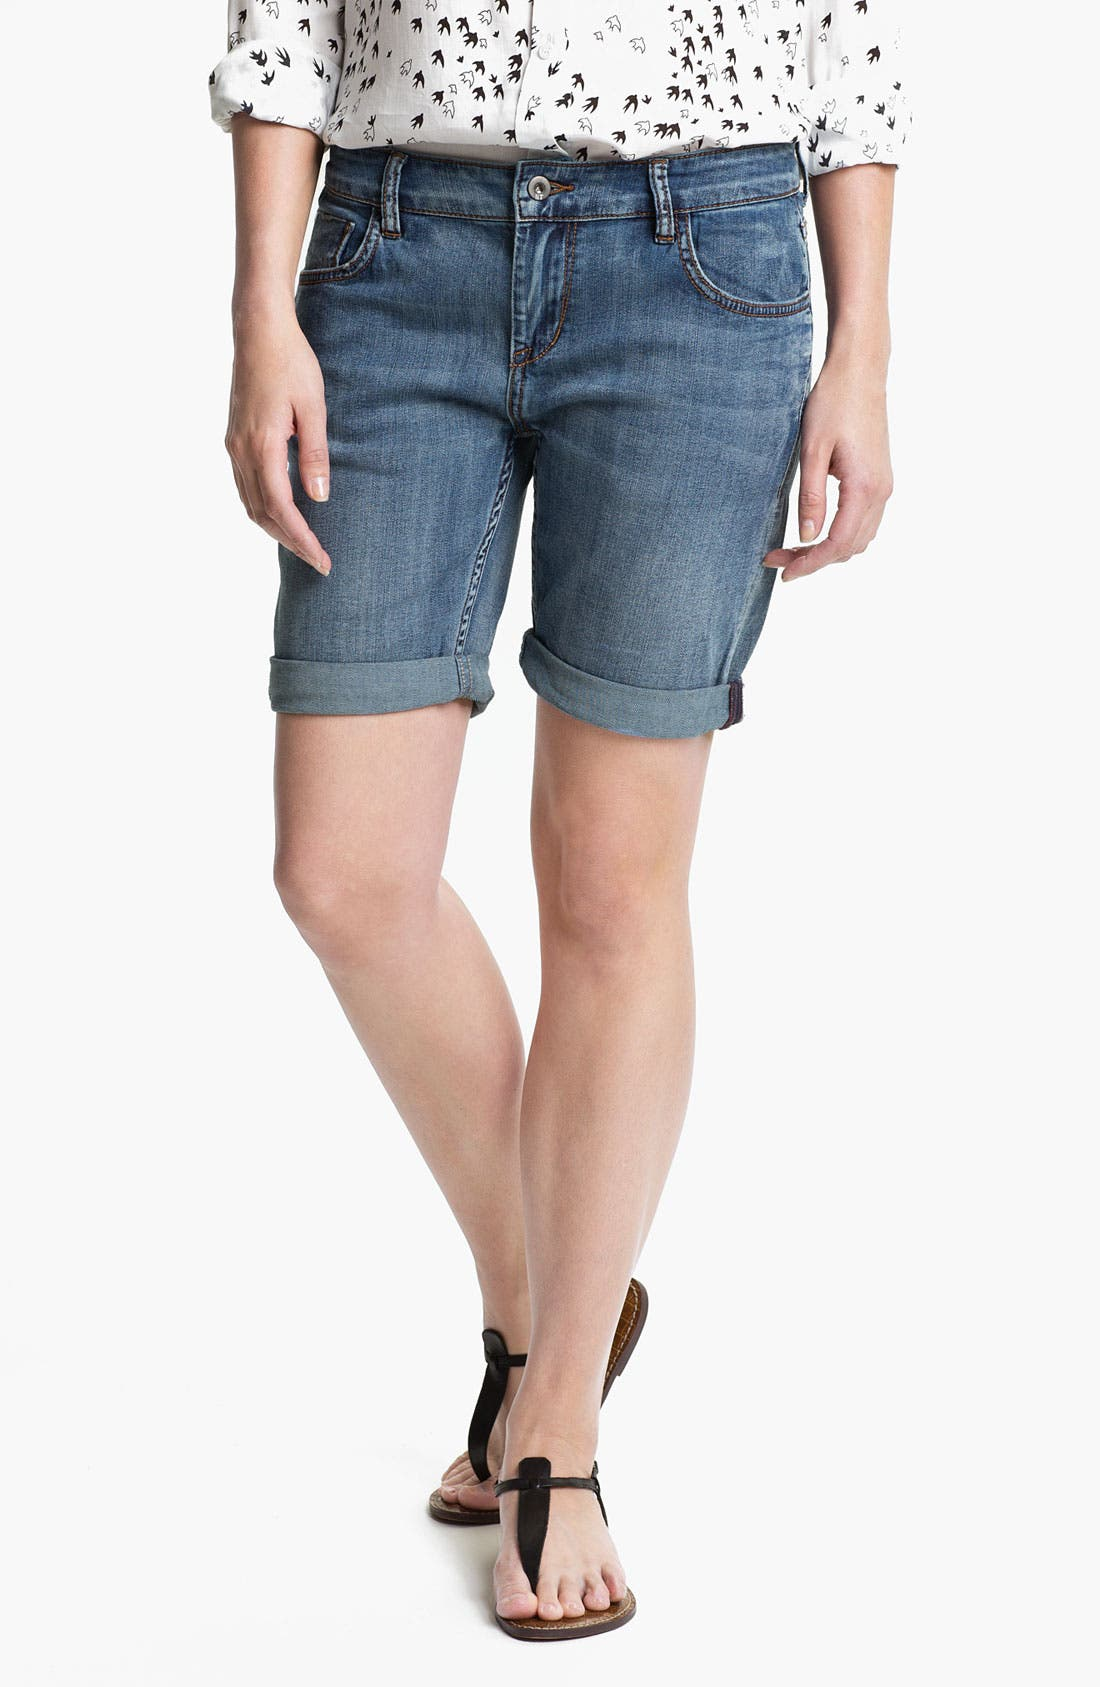 Alternate Image 1 Selected - !iT Collective 'Picnic' Slouch Denim Shorts (Long Rider Fade) (Online Exclusive)